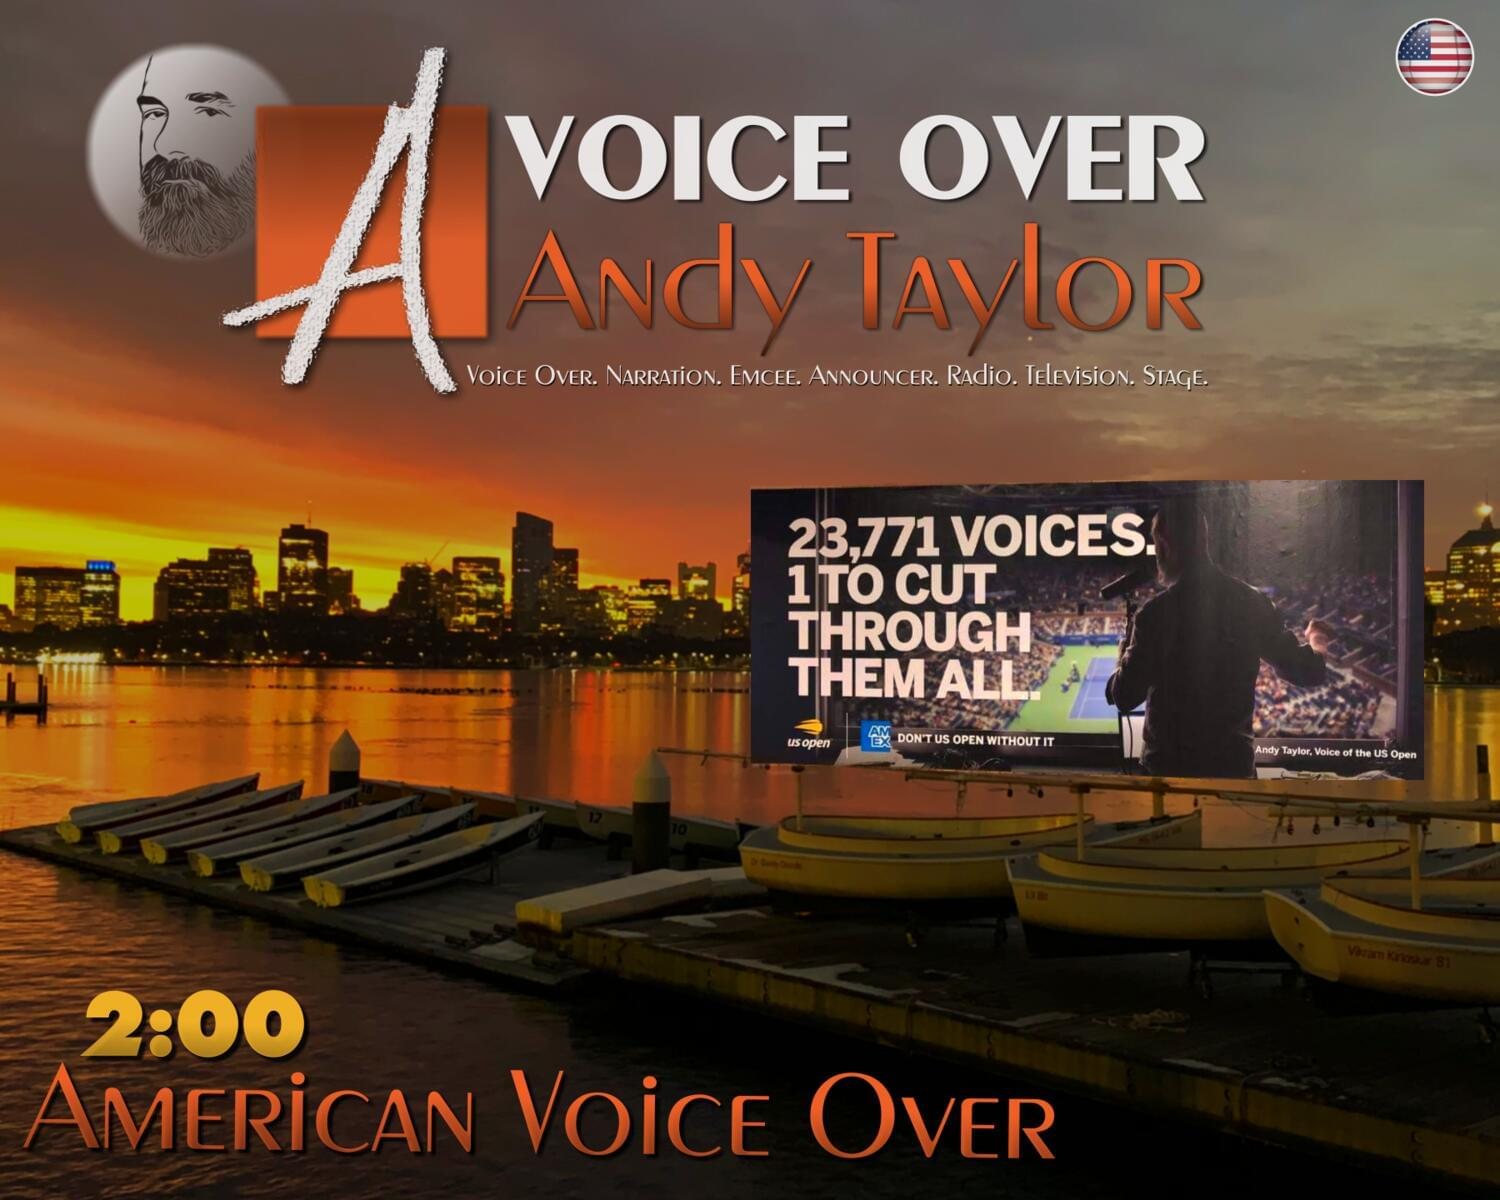 American Voice Over / 2-minutes by StadiumAndy - 118251